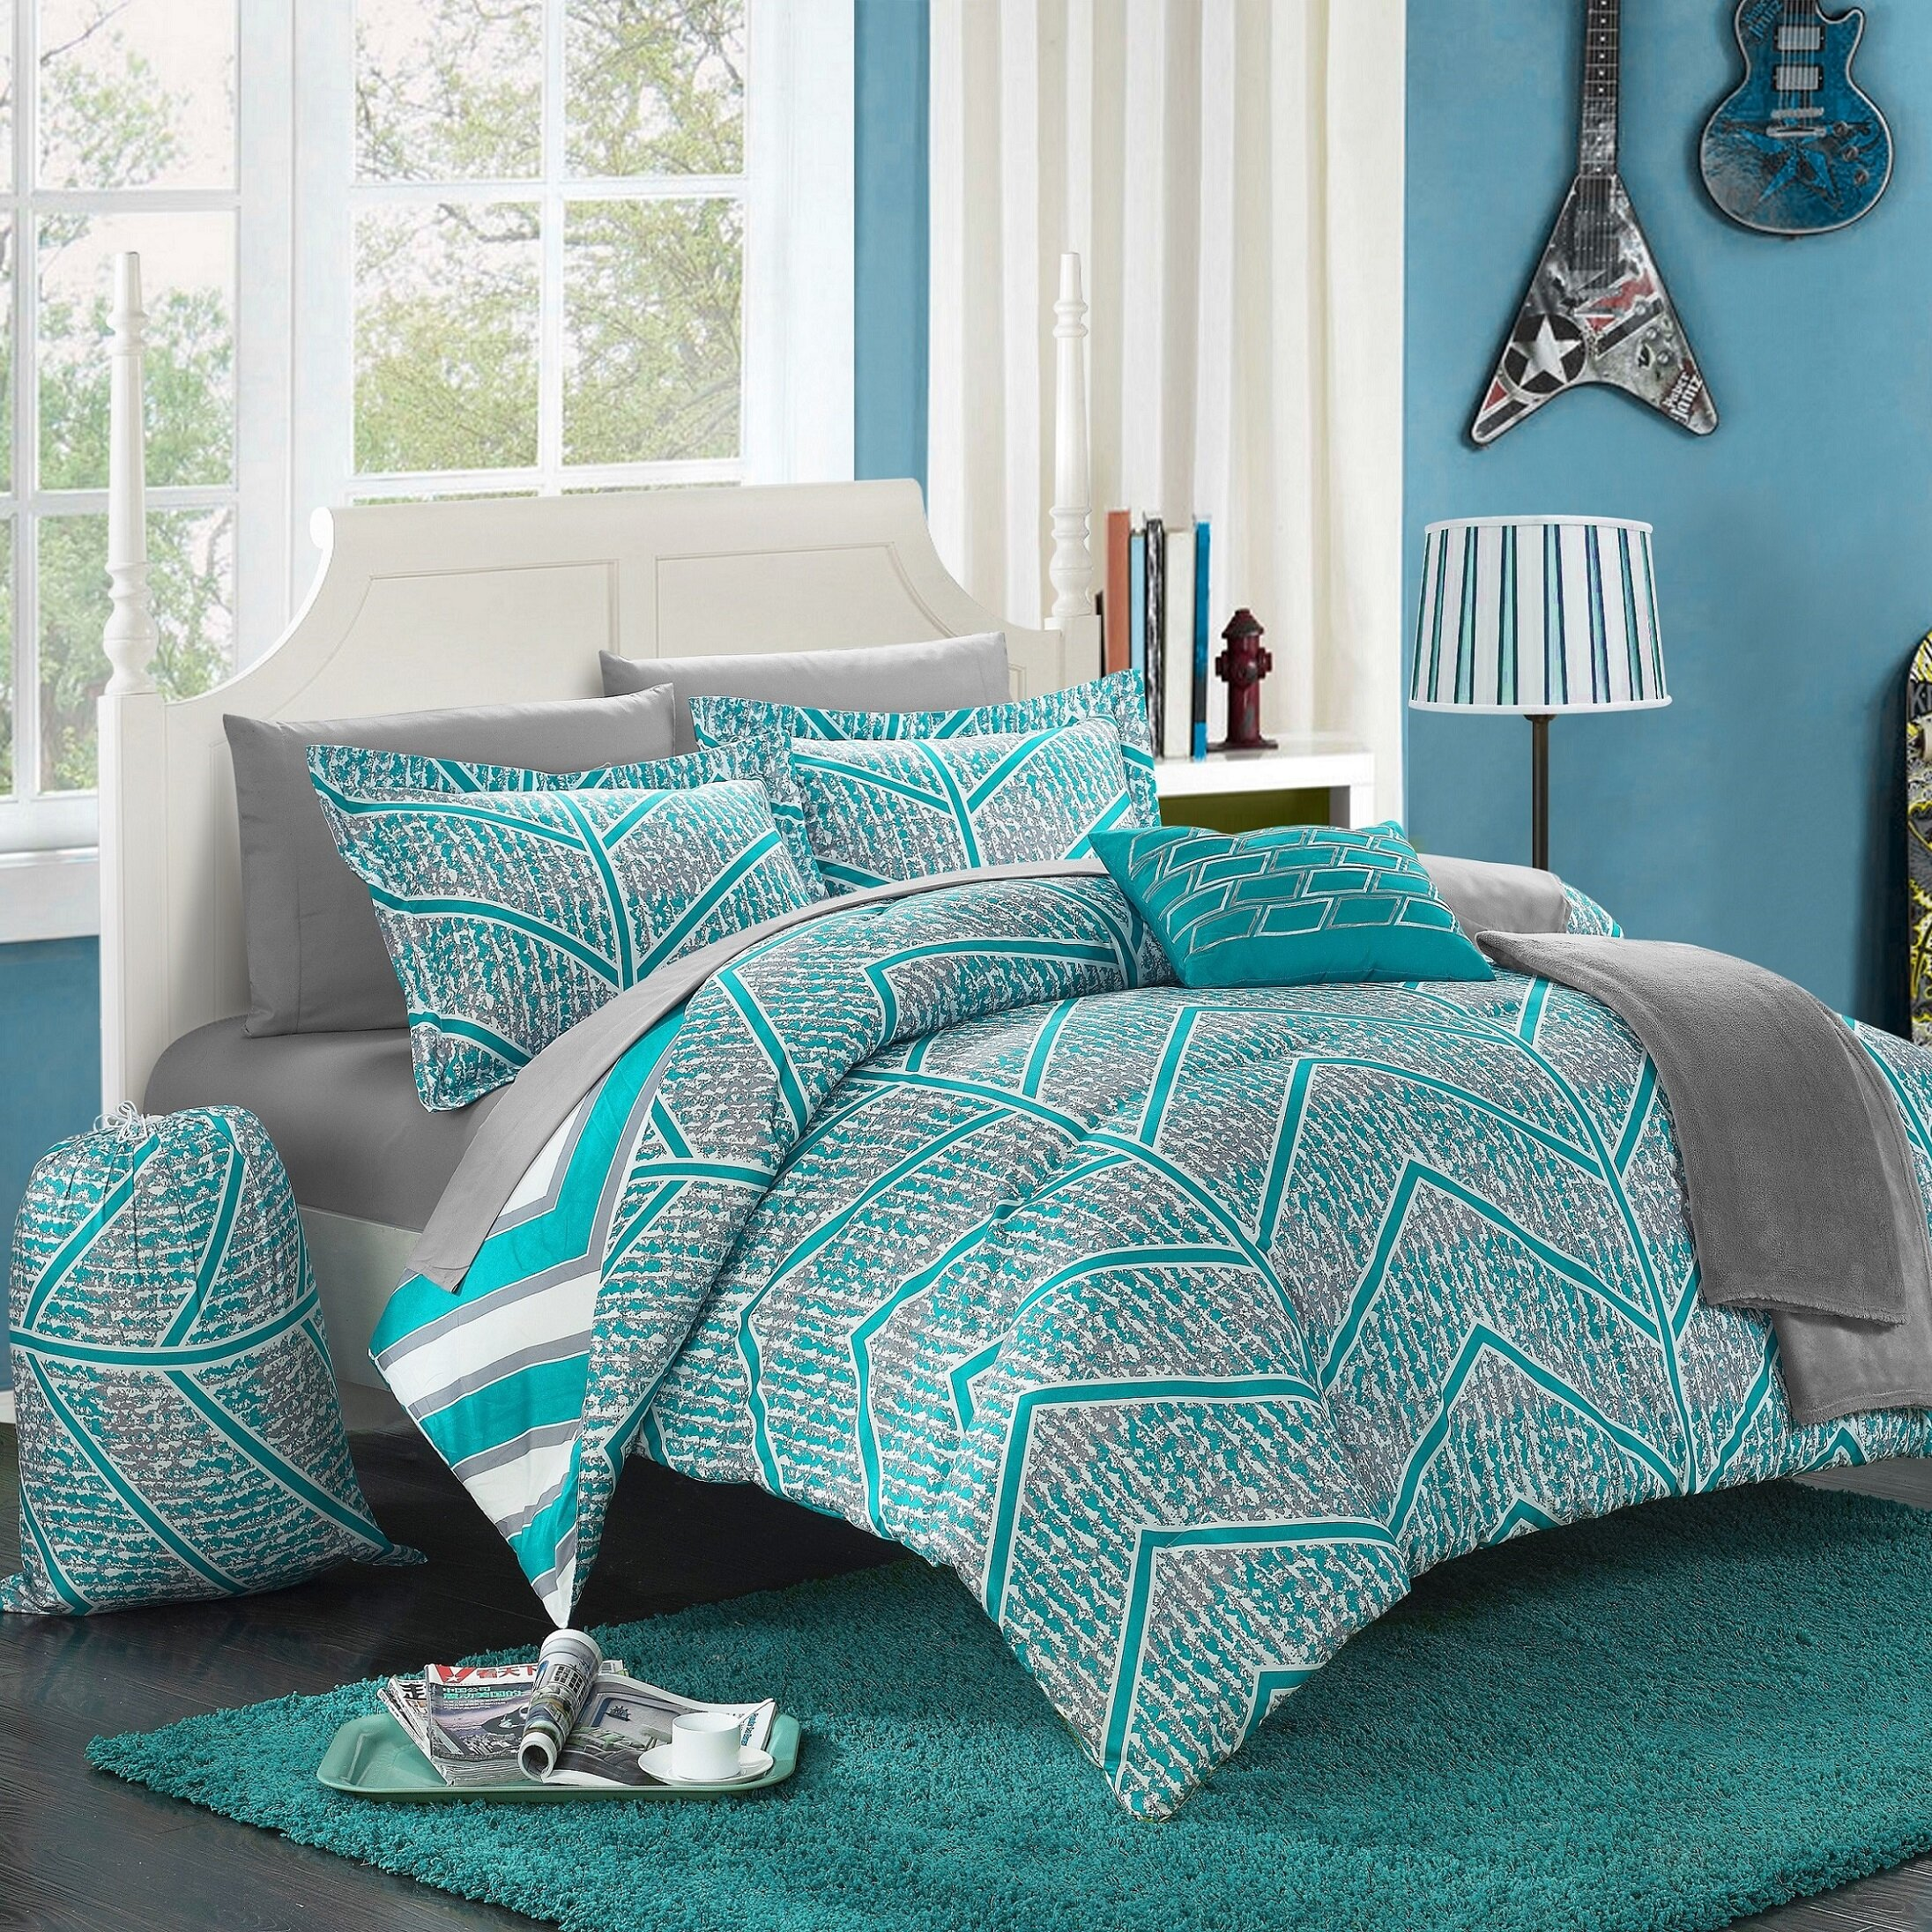 bed twin set xl in a comforter co mainstays sheets leaf asli botanical bedding walmart coordinated aetherair size bag